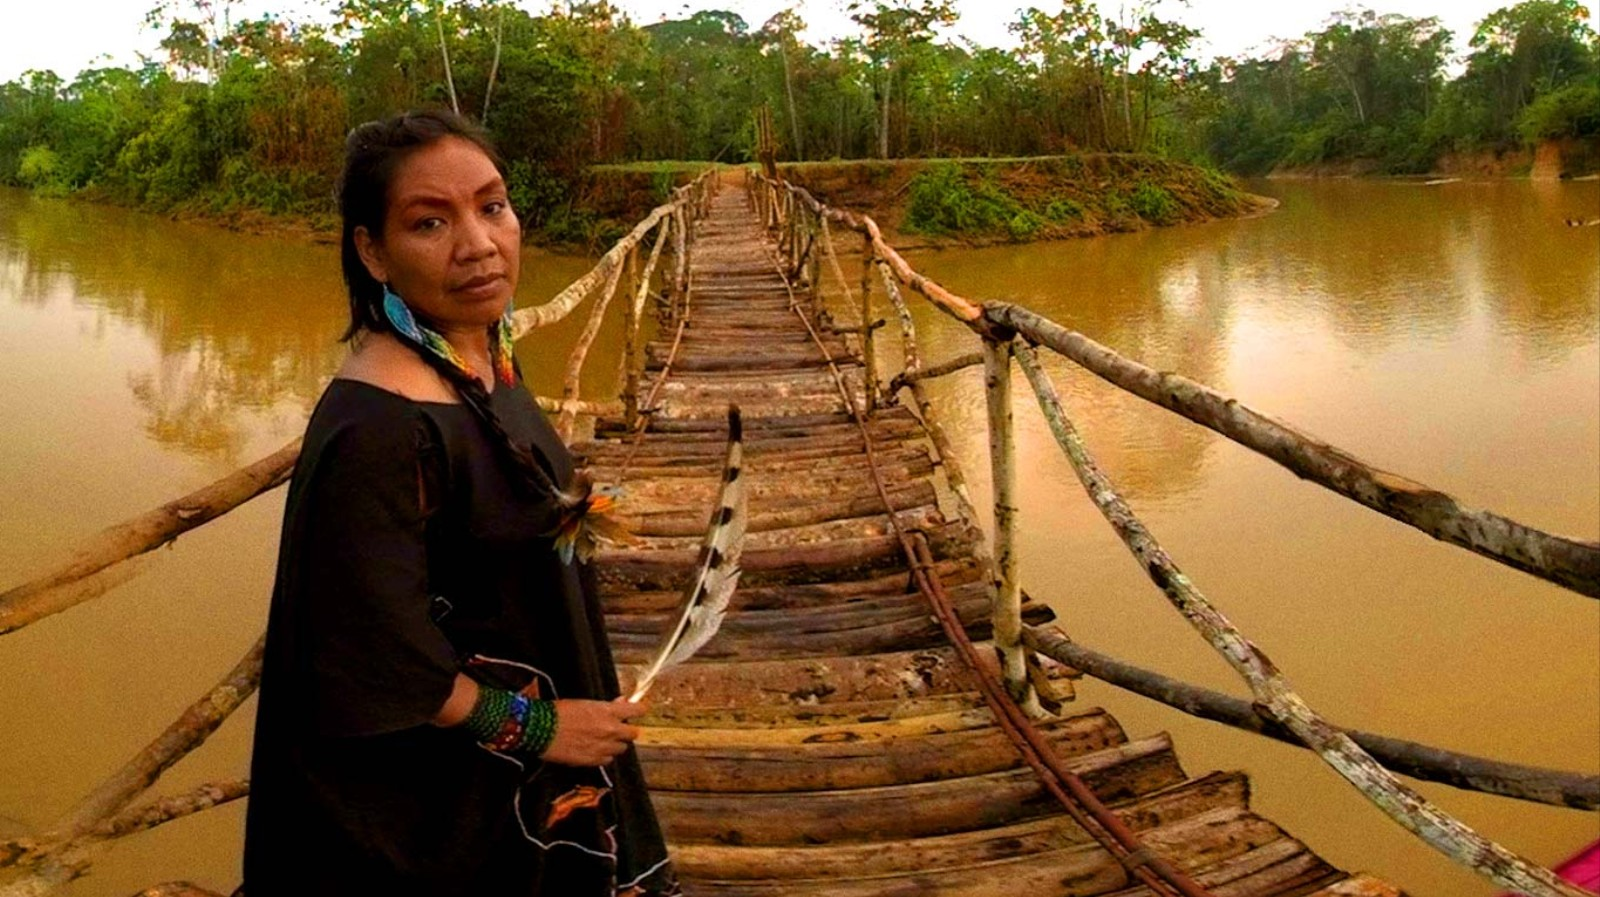 This Incredible VR Film Takes You on an Ayahuasca Journey to the Amazon